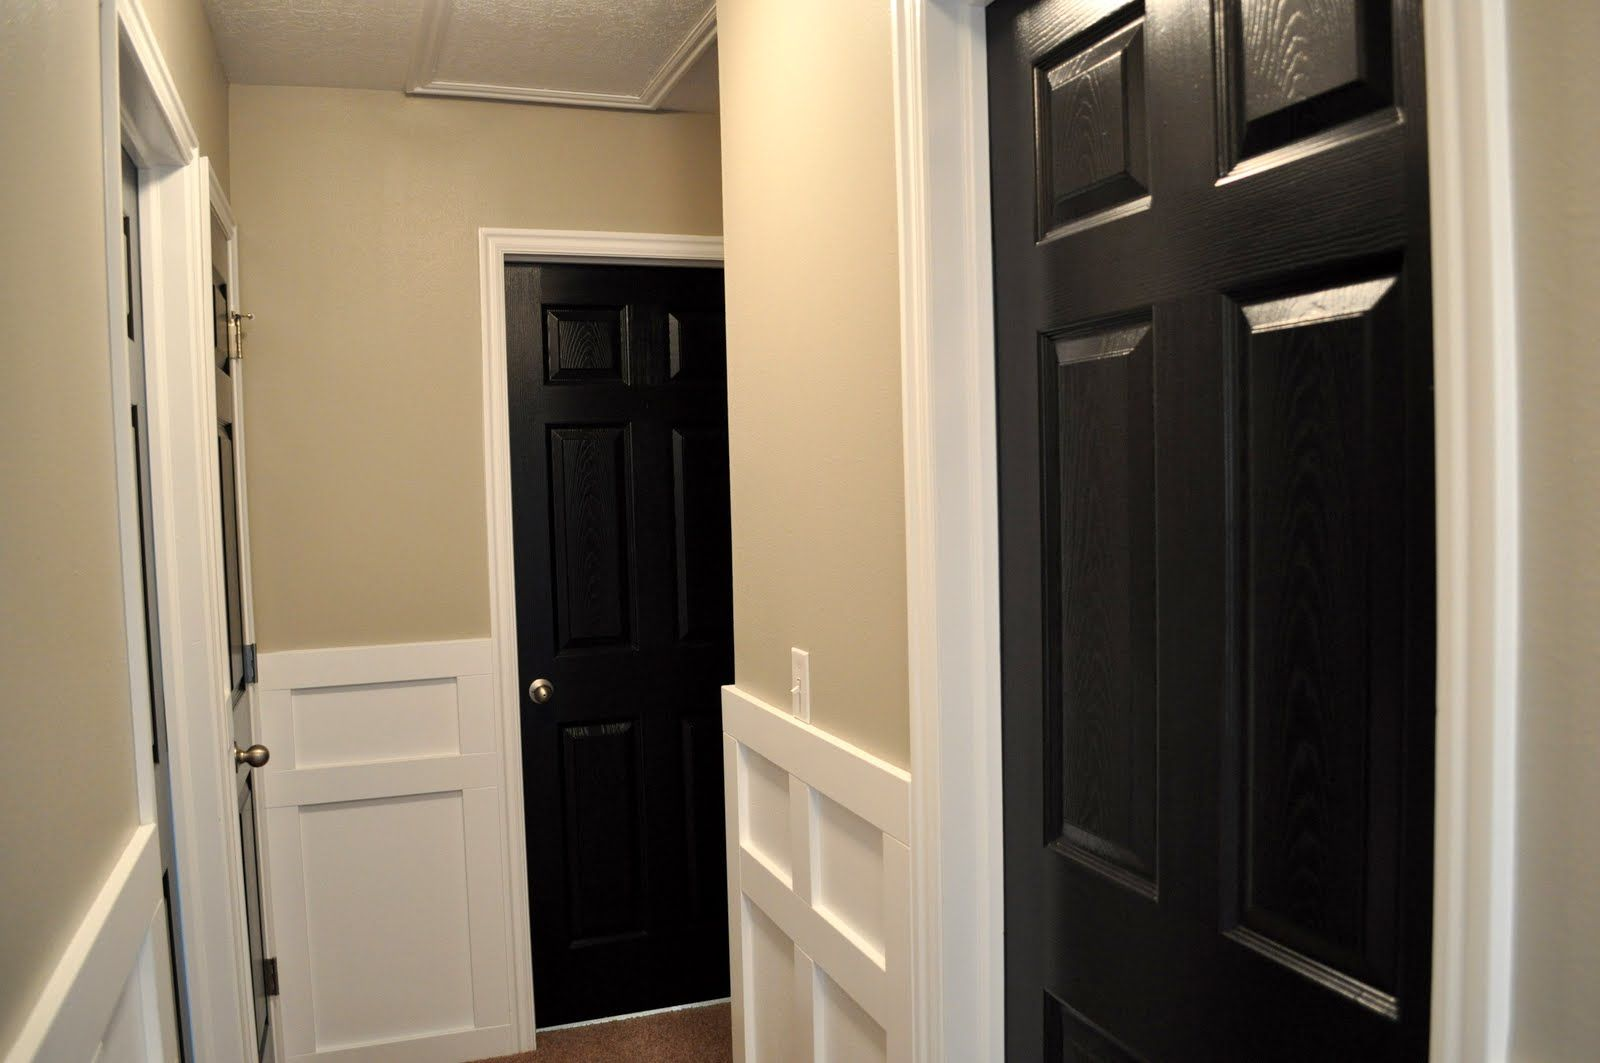 Black doors with white trim - 10 Images About Flooring Trim Amp Hallways On Pinterest Stair 10 Images About Flooring Trim Amp